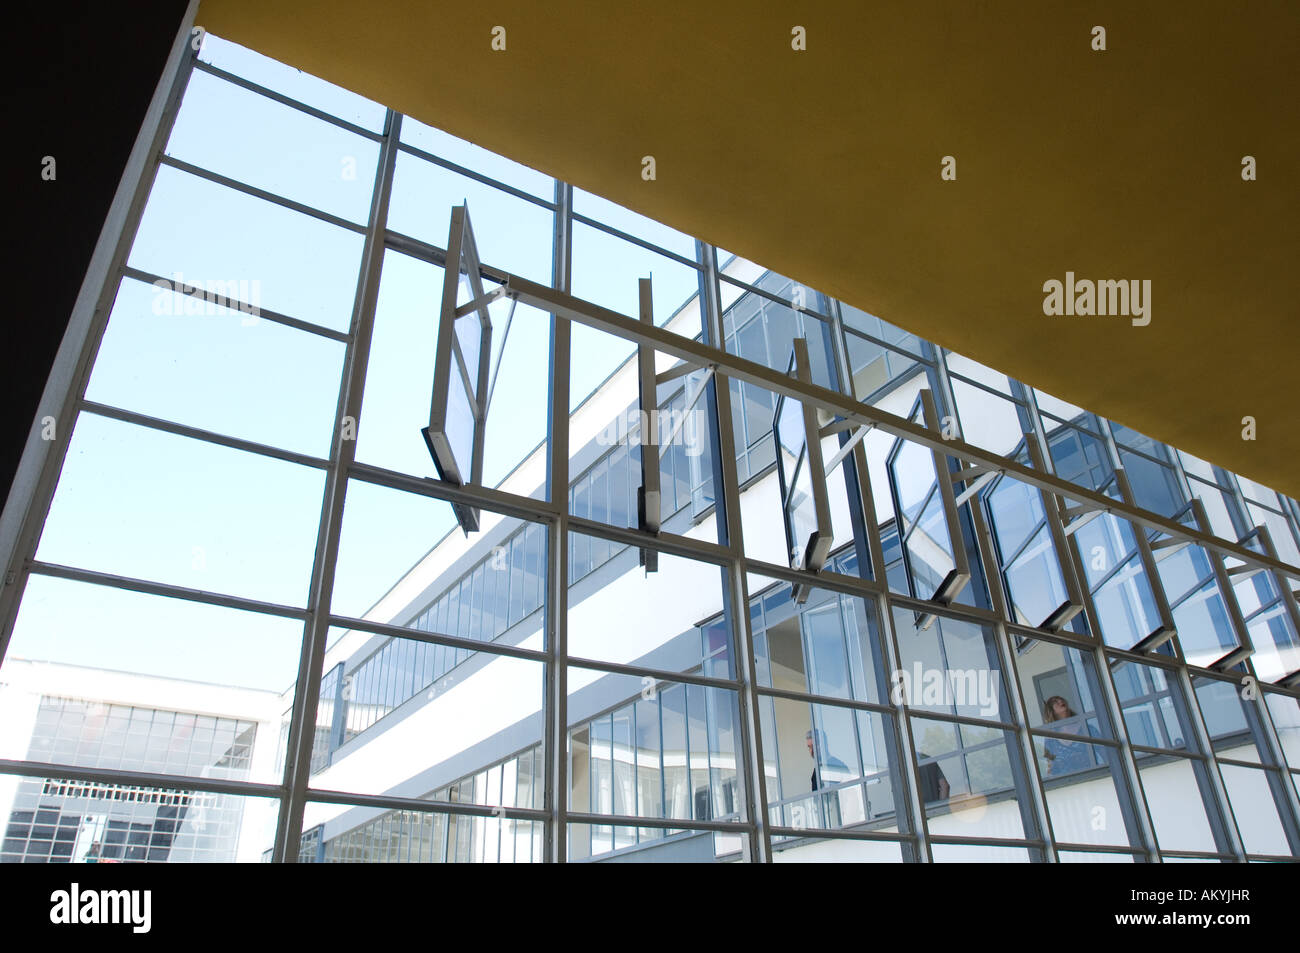 Fenster Bauhaus Windows In The Bauhaus With A Special Mechanism To Open The Window Stock Photo - Alamy